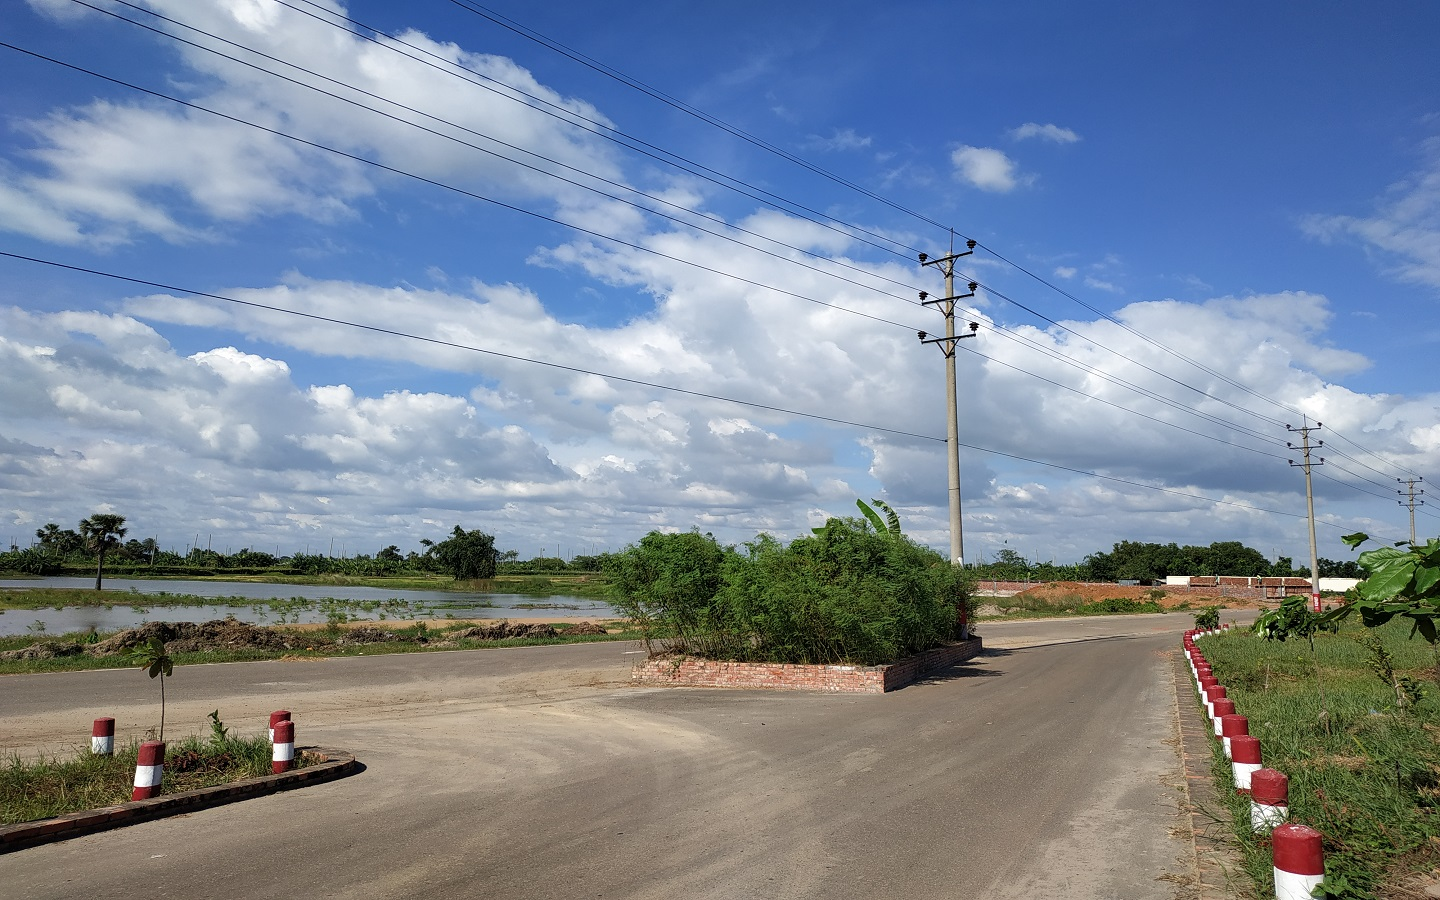 A road in Purbachal